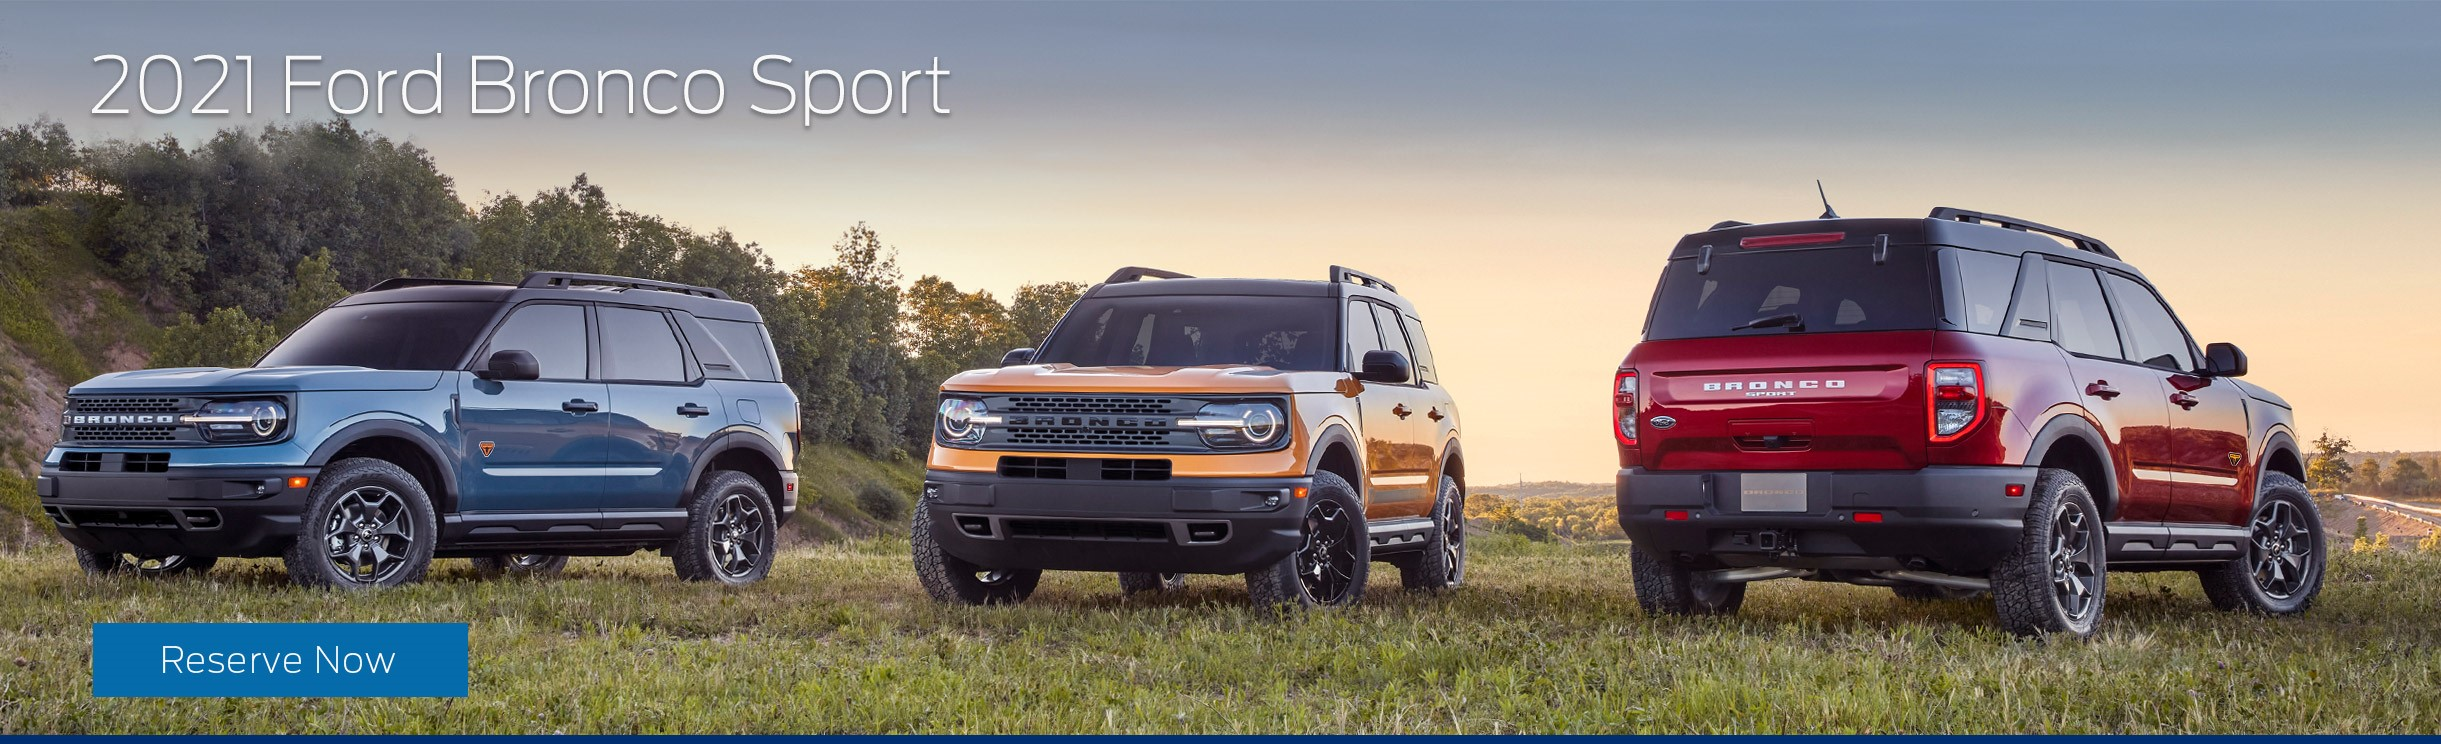 Click Here to Reserve a 2021 Ford Bronco Sport